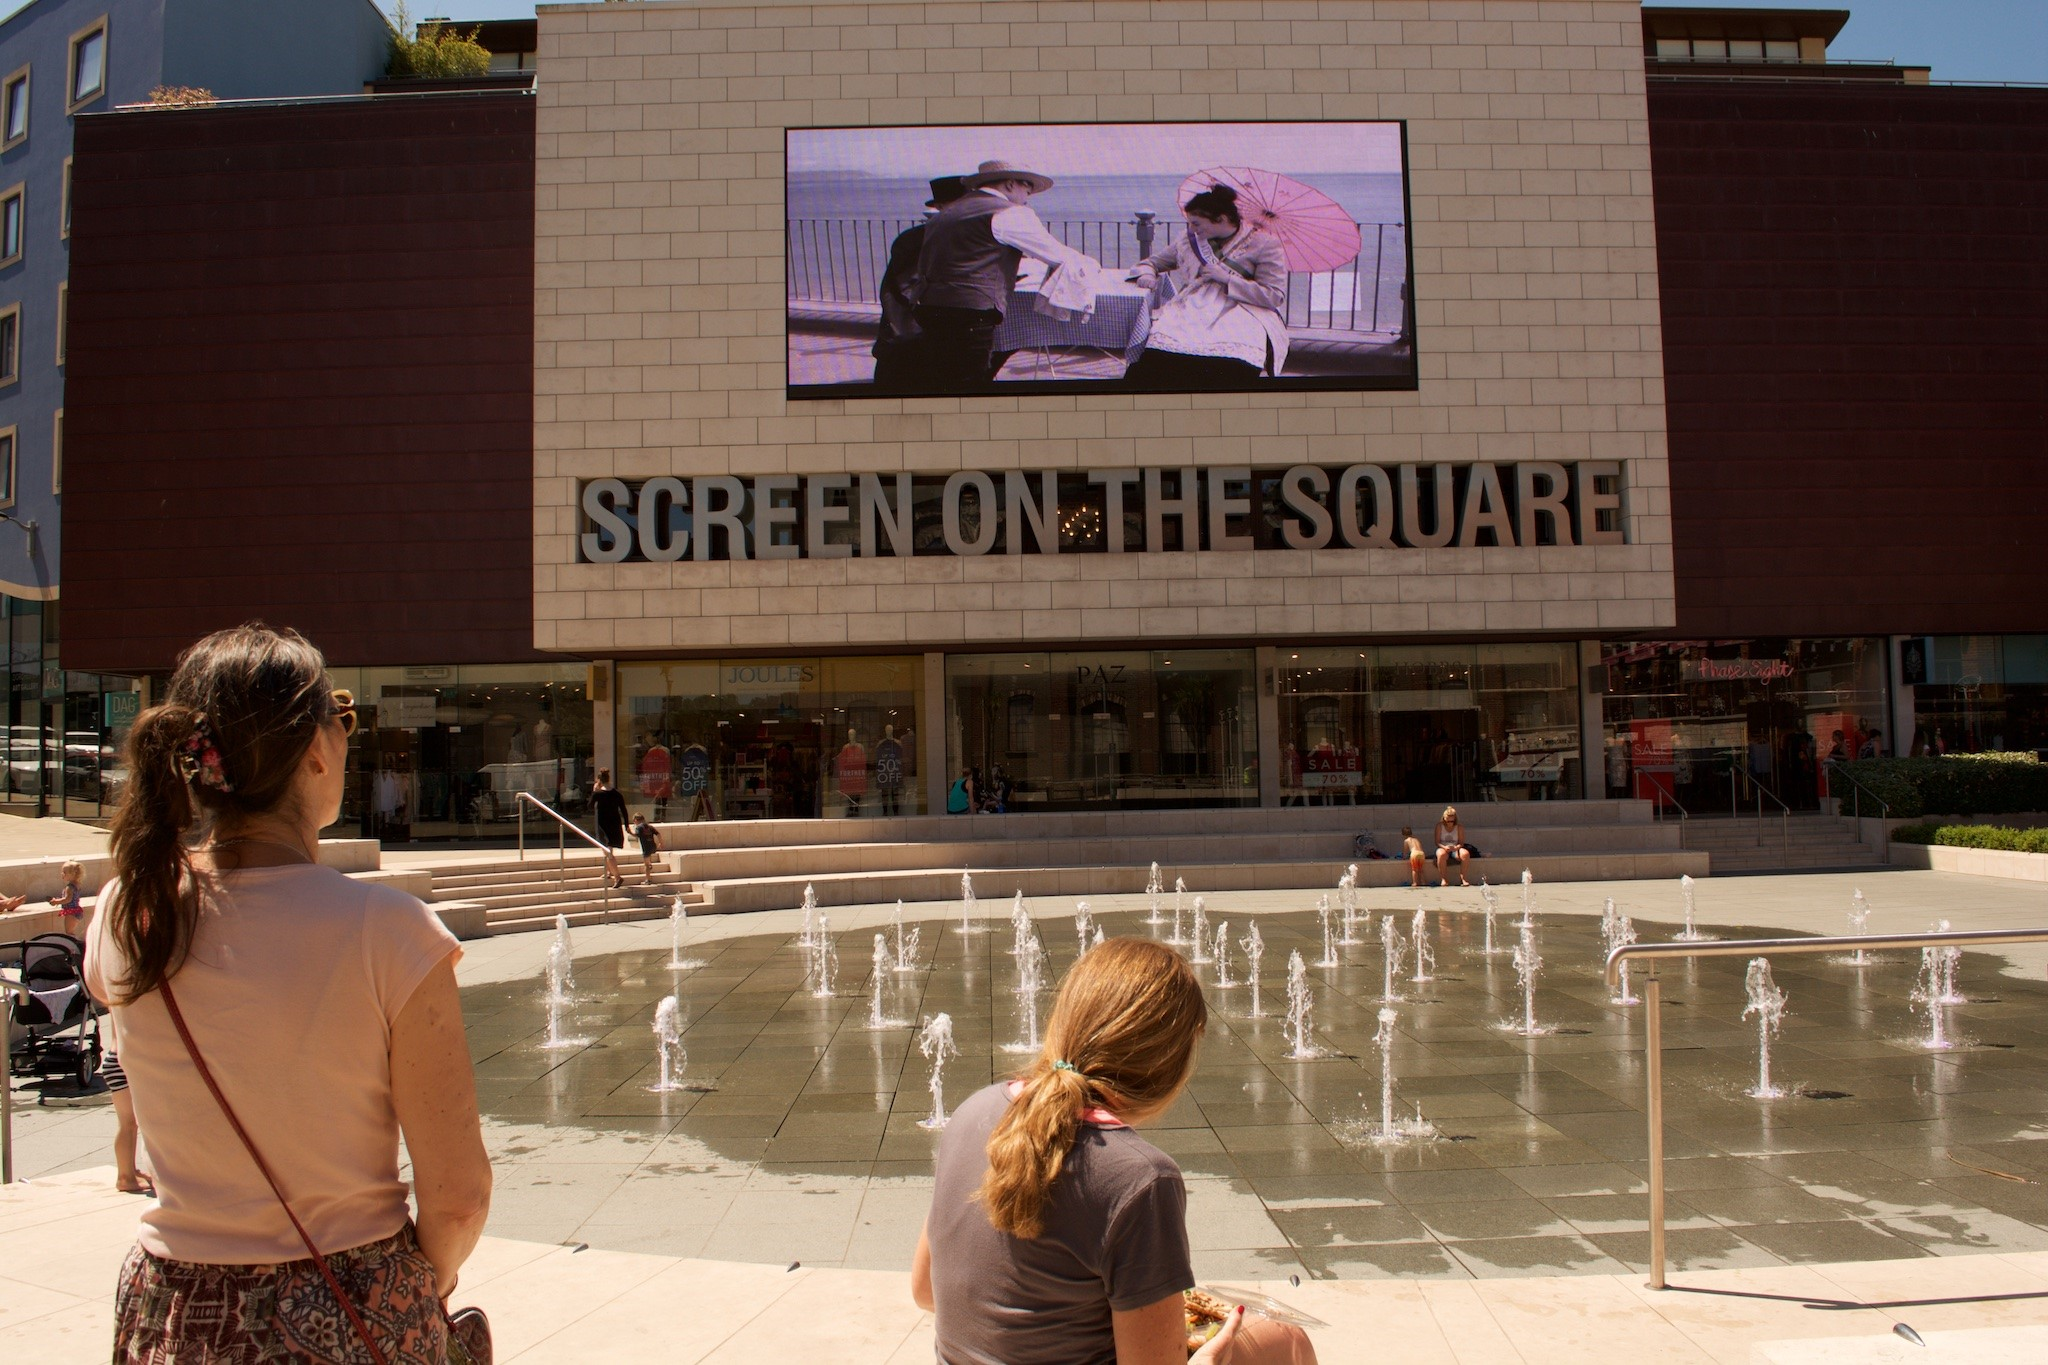 'Tea for Two' showing on the Screen on the Square